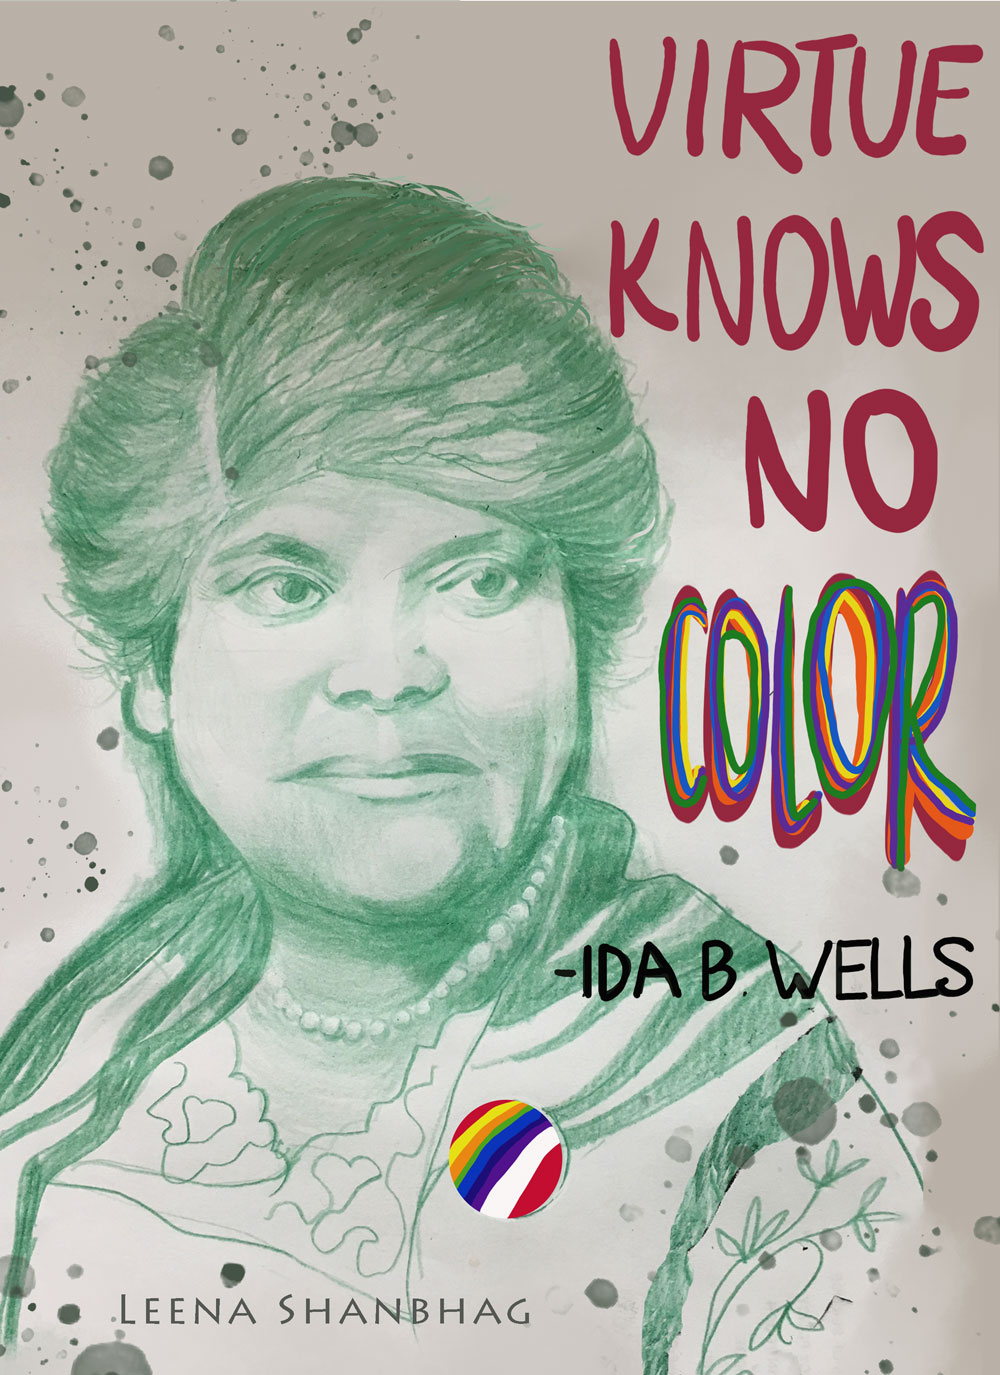 Portrait of Ida B. Wells